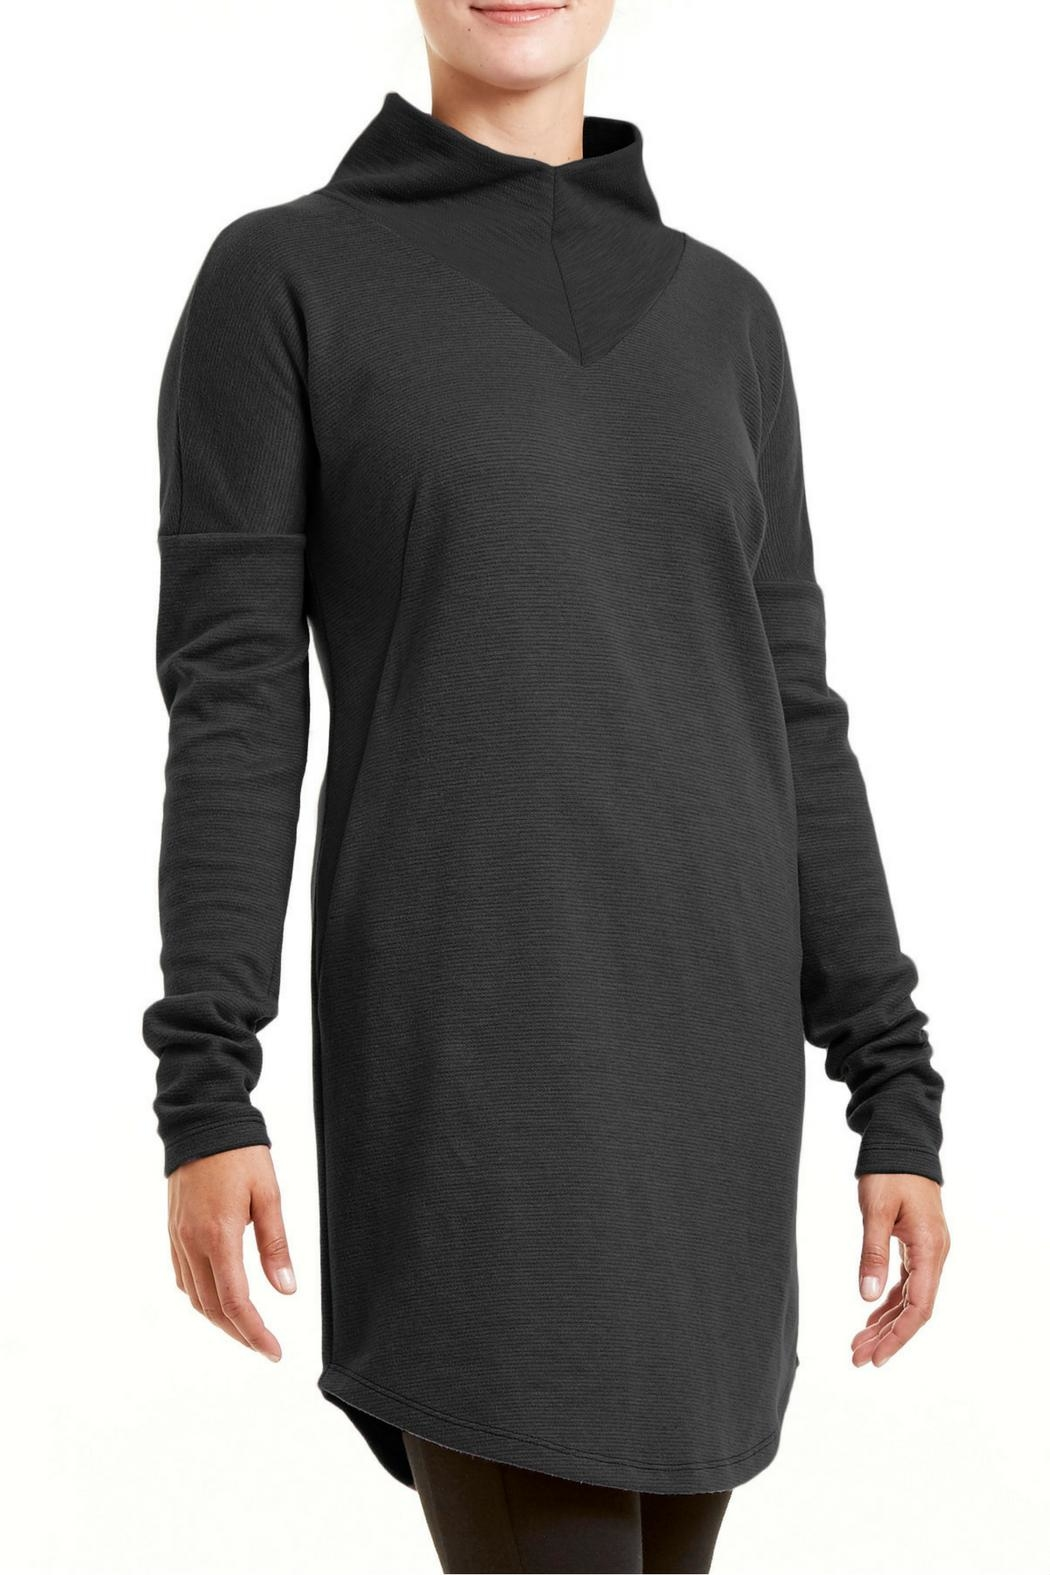 FIG Clothing Ana Tunic - Front Cropped Image